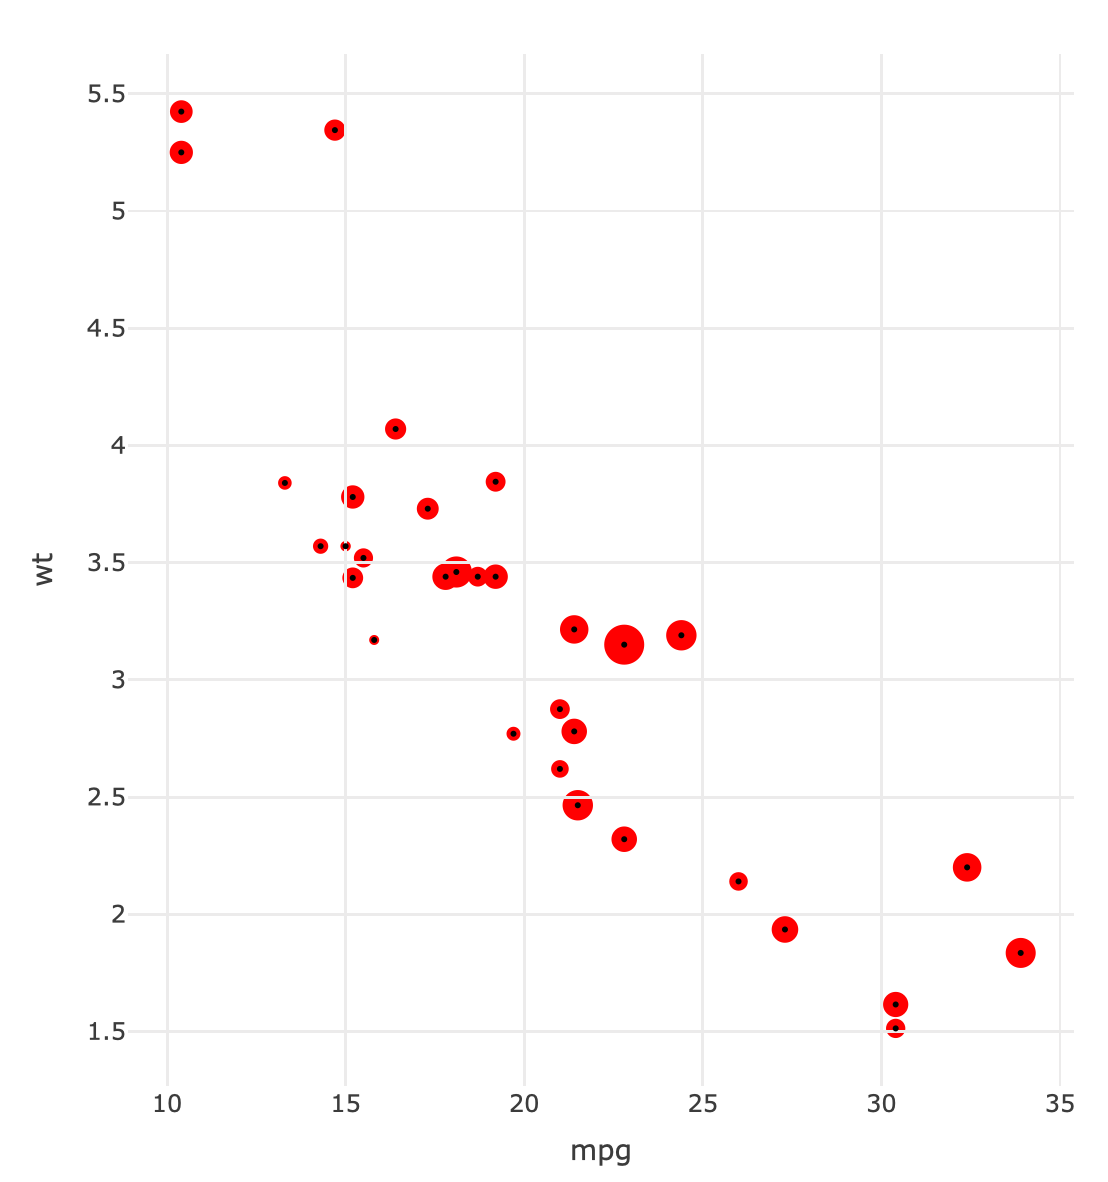 draggging multiple points using plotly - General - RStudio Community